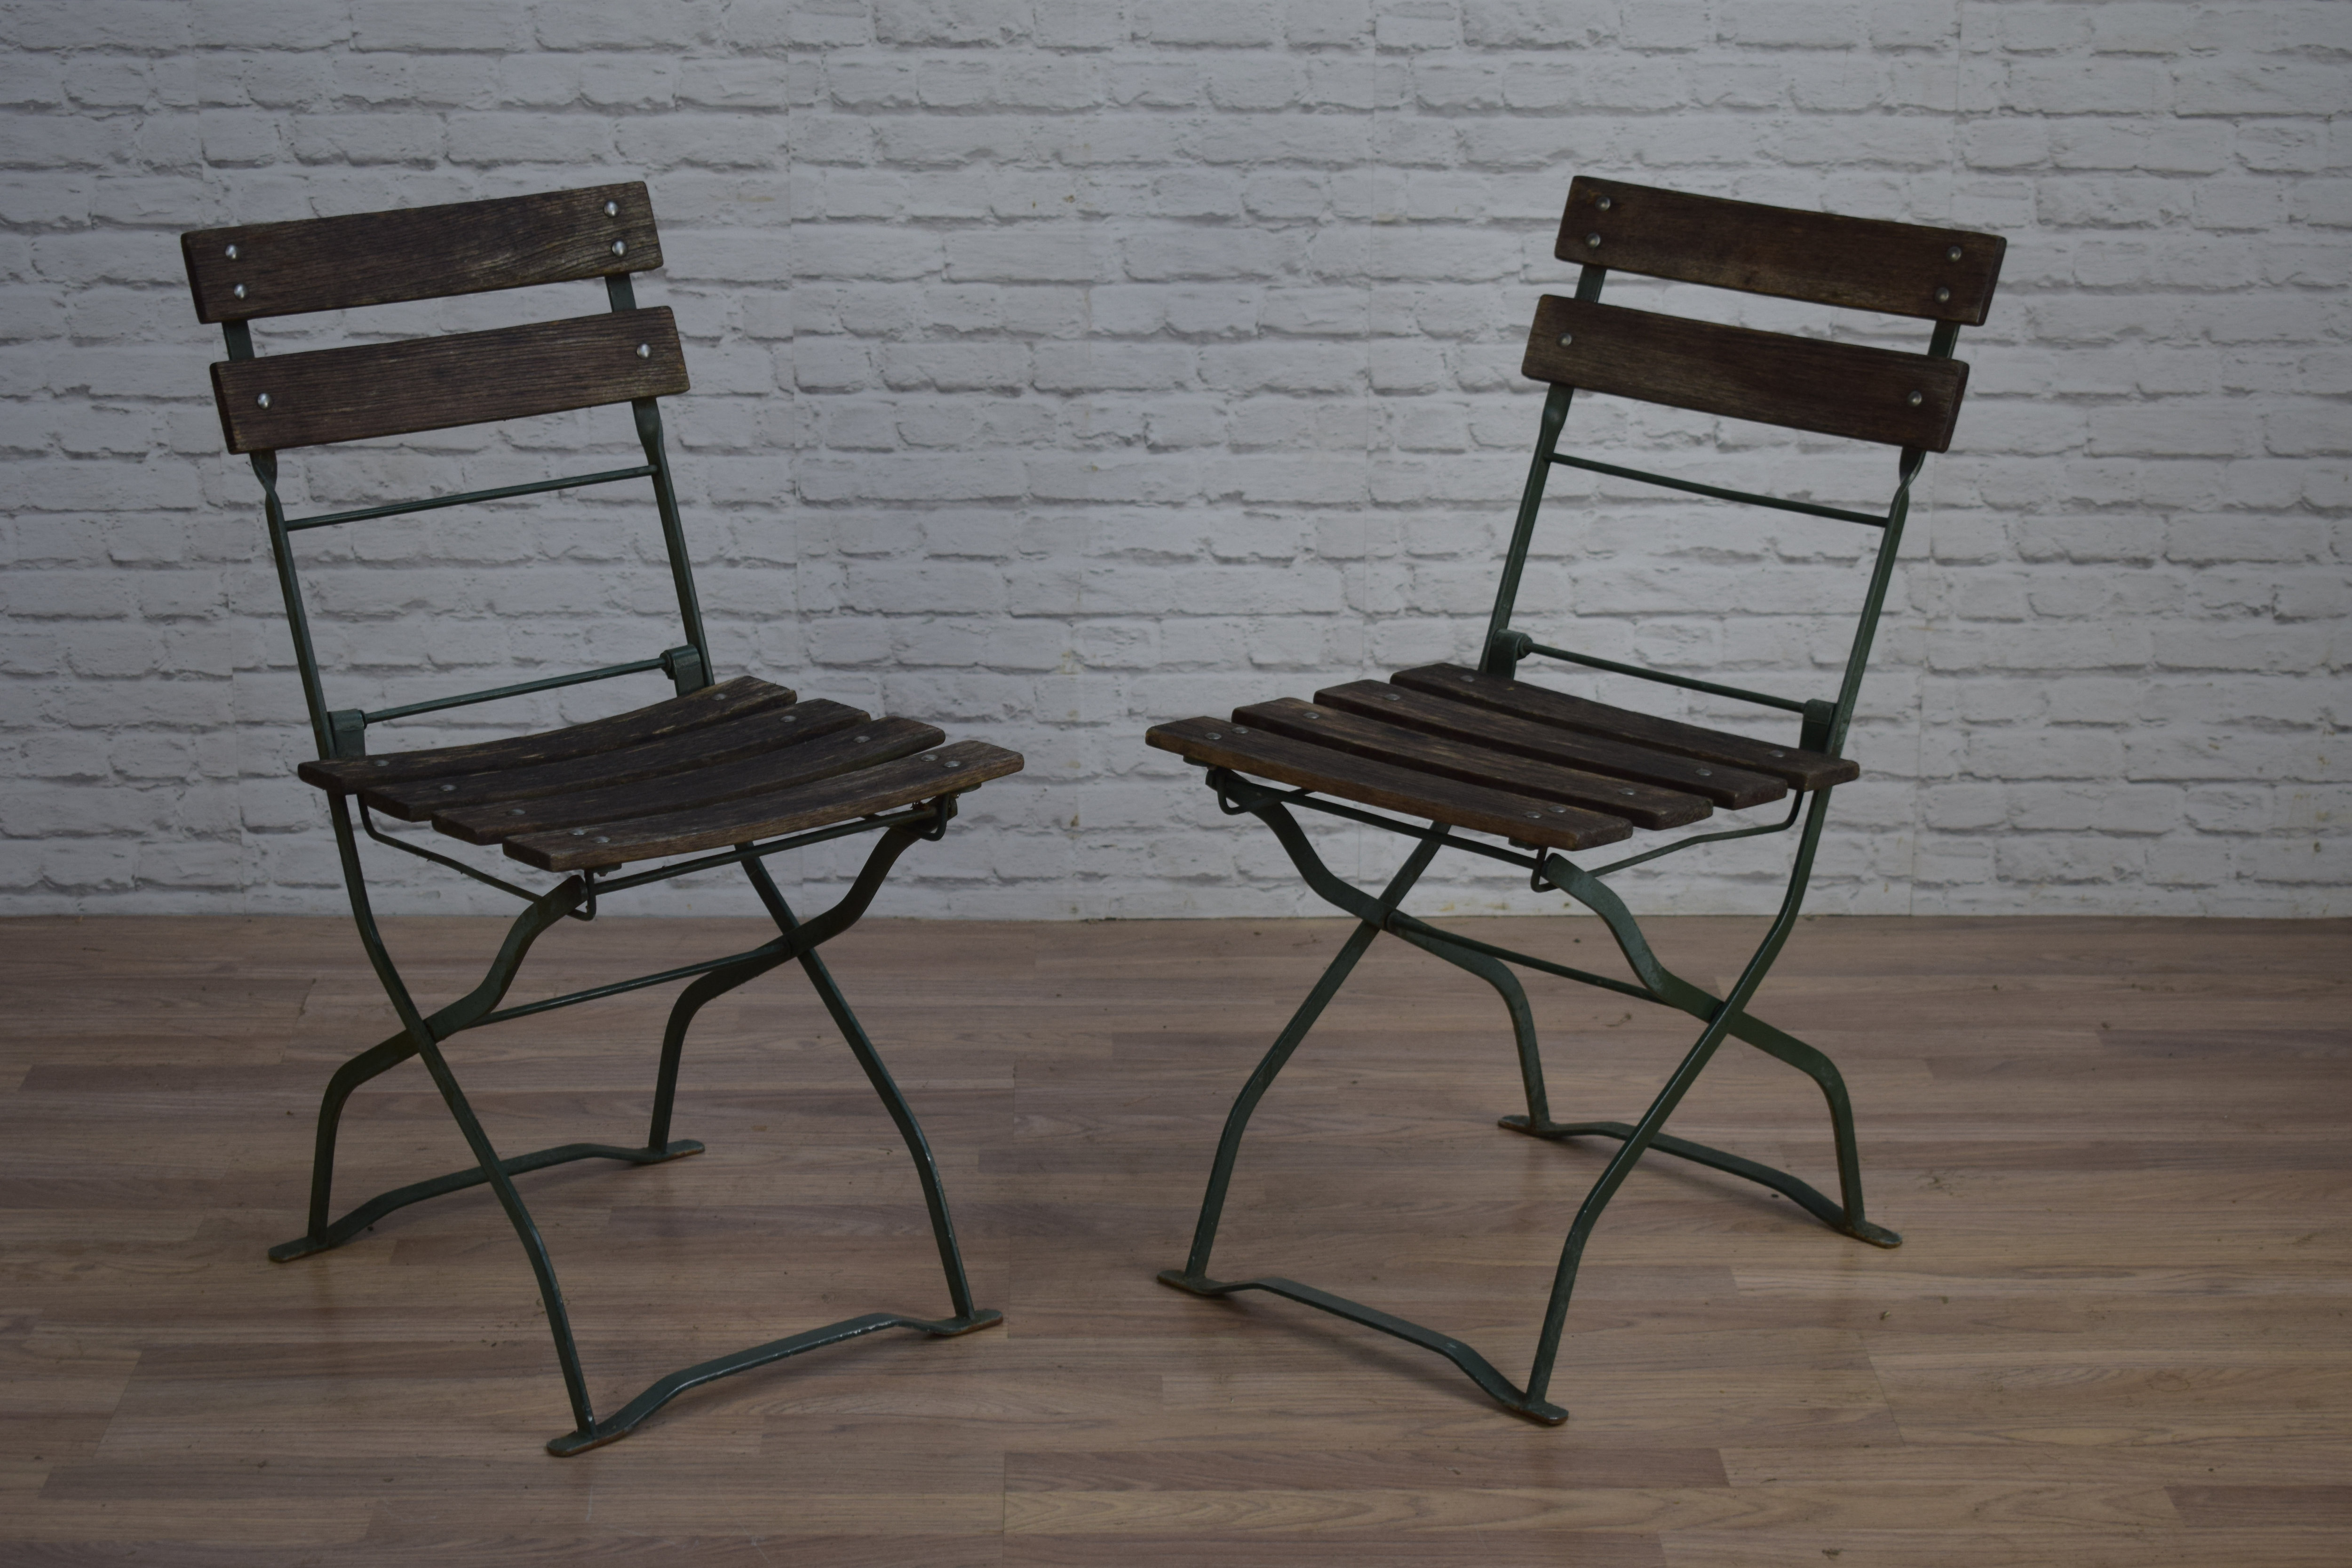 Vintage Industrial Style Green Folding Garden Cafe Bar Chairs 50 Available